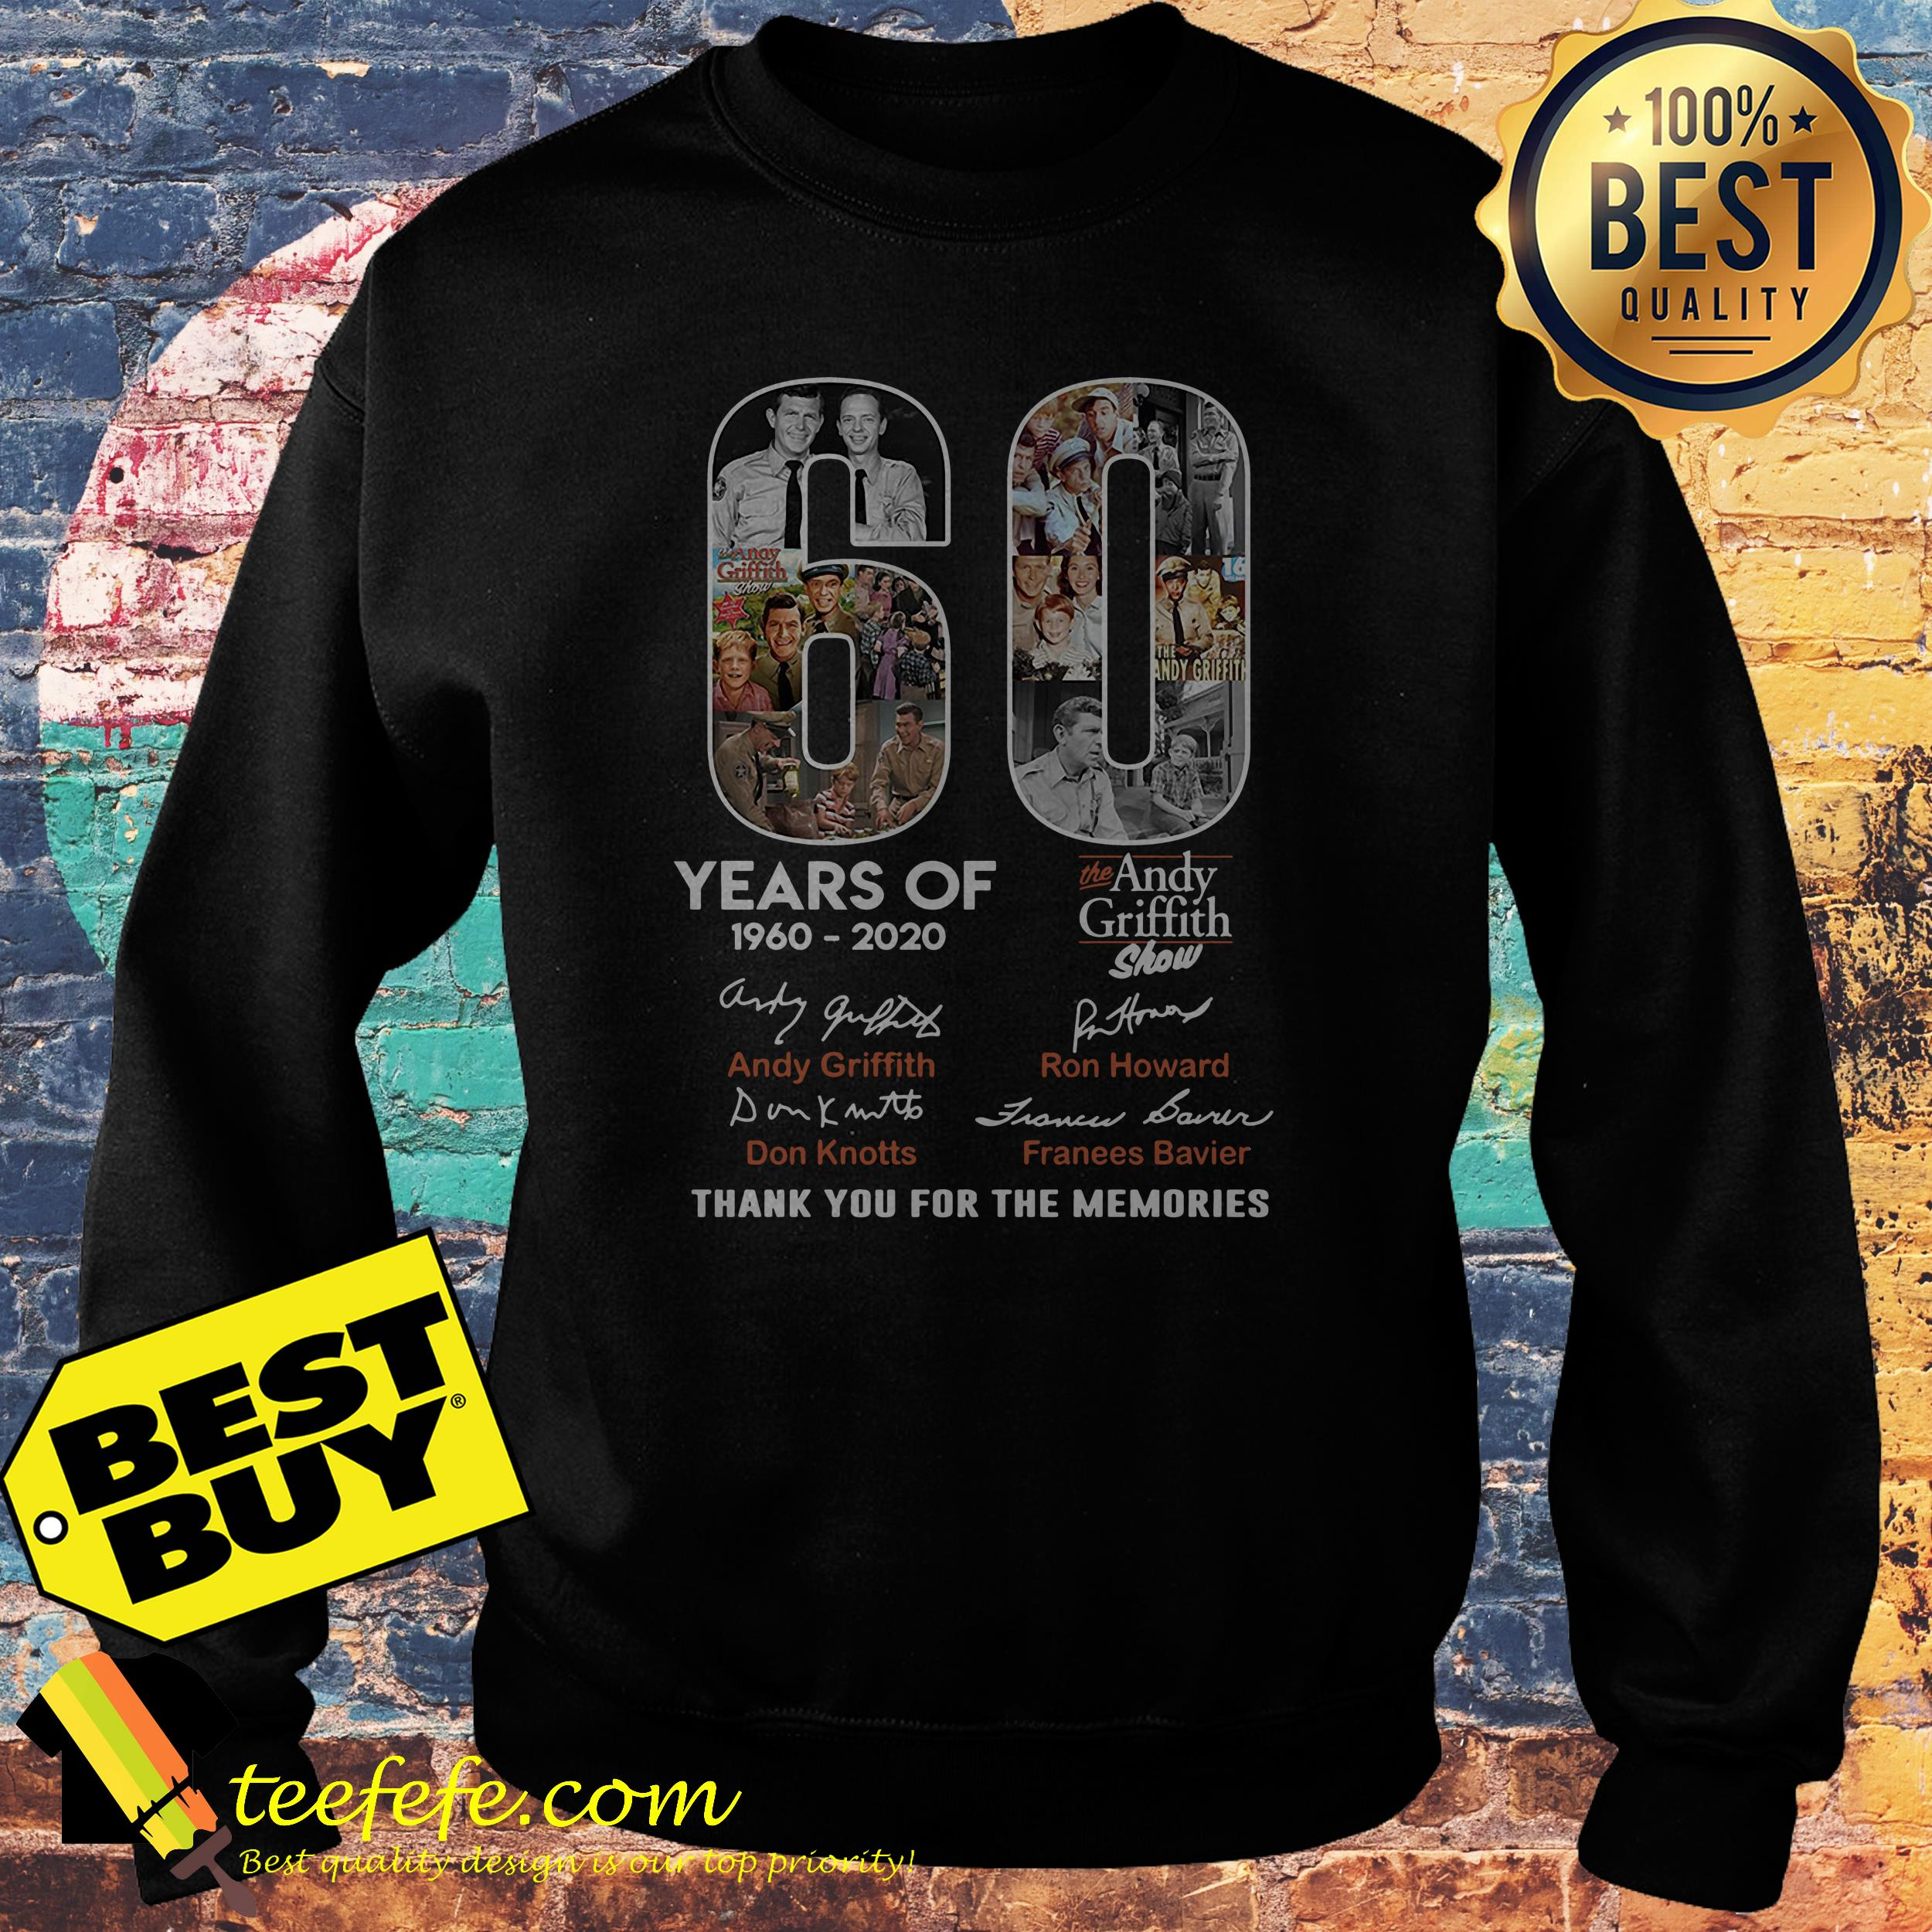 60 Years of the Andy Griffith Show 1960-2020 thank you for the memories sweatshirt